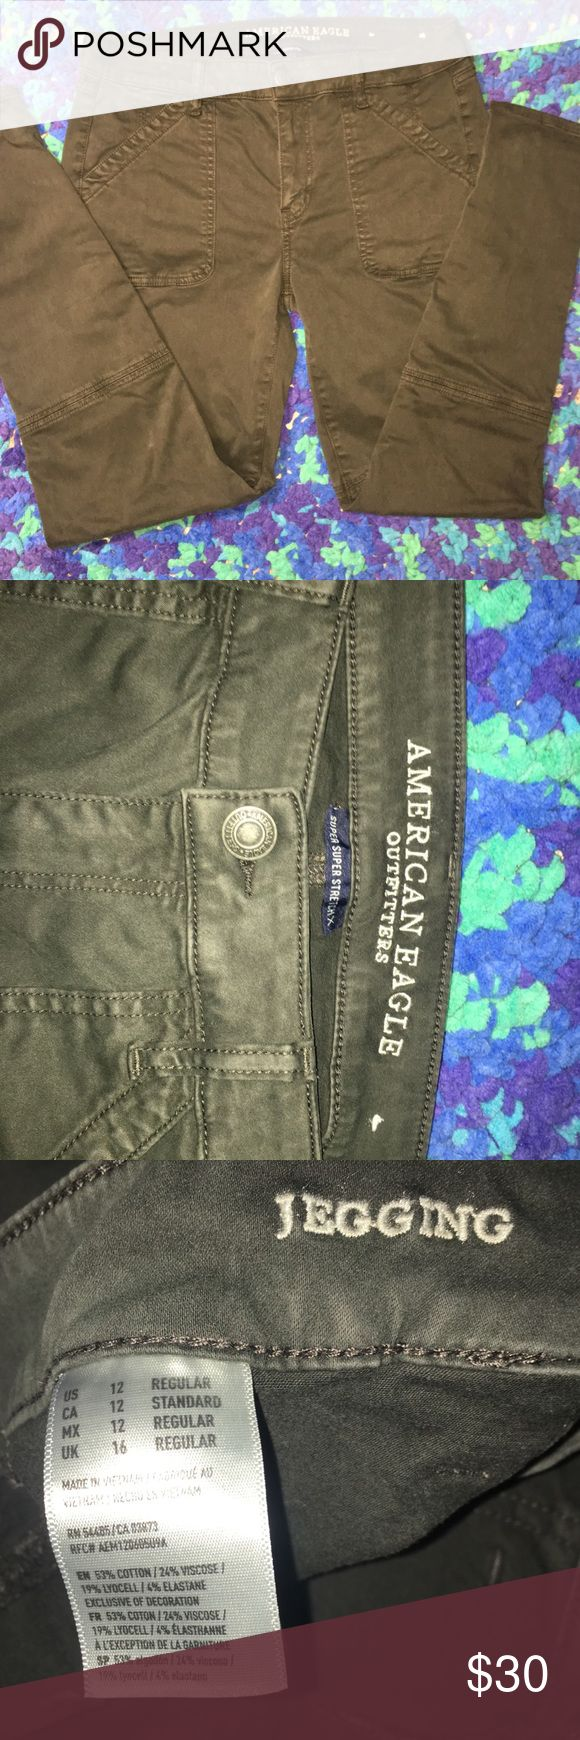 American Eagle jeggings Amazing moto style jeggings! Bought two pairs online  (others are for sale as well) and ended up not really liking the style on me. Washed and tried on ONLY. BRAND NEW W/OUT TAGS. 2nd picture does their color justice. More of a dark hunter green. American Eagle Outfitters Jeans Skinny